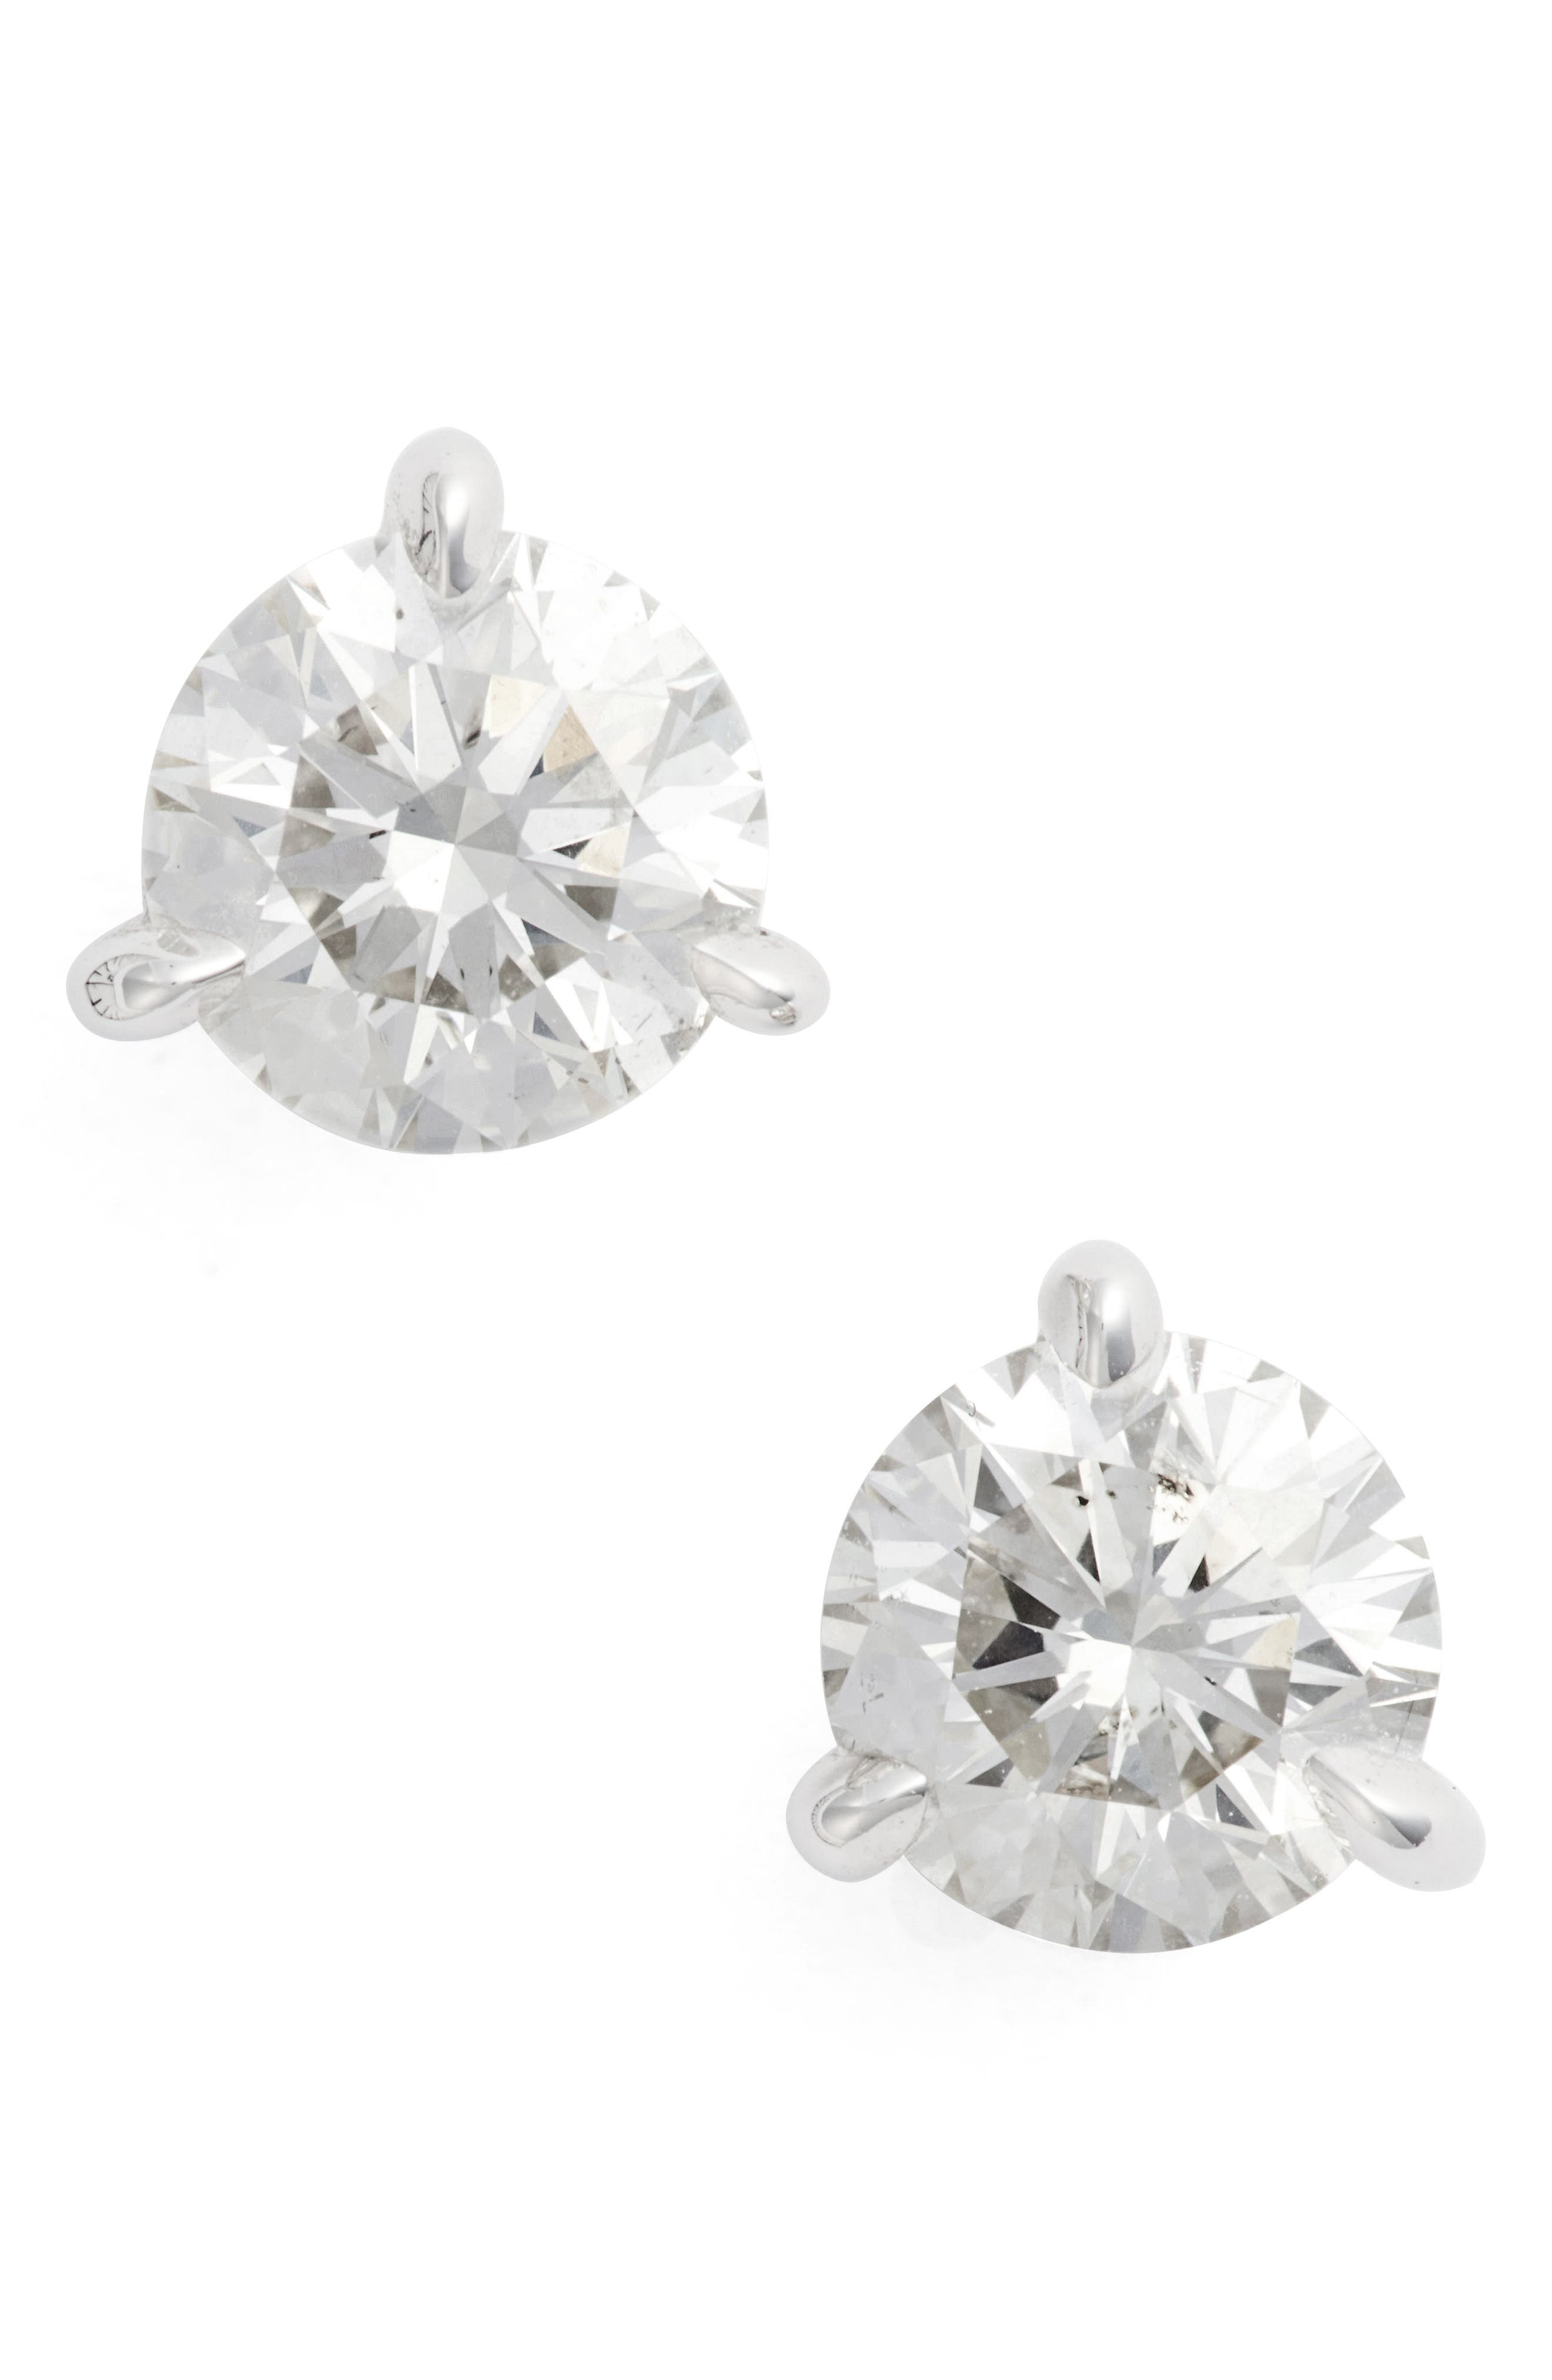 1.50ct tw Diamond & Platinum Stud Earrings,                             Alternate thumbnail 2, color,                             PLATINUM